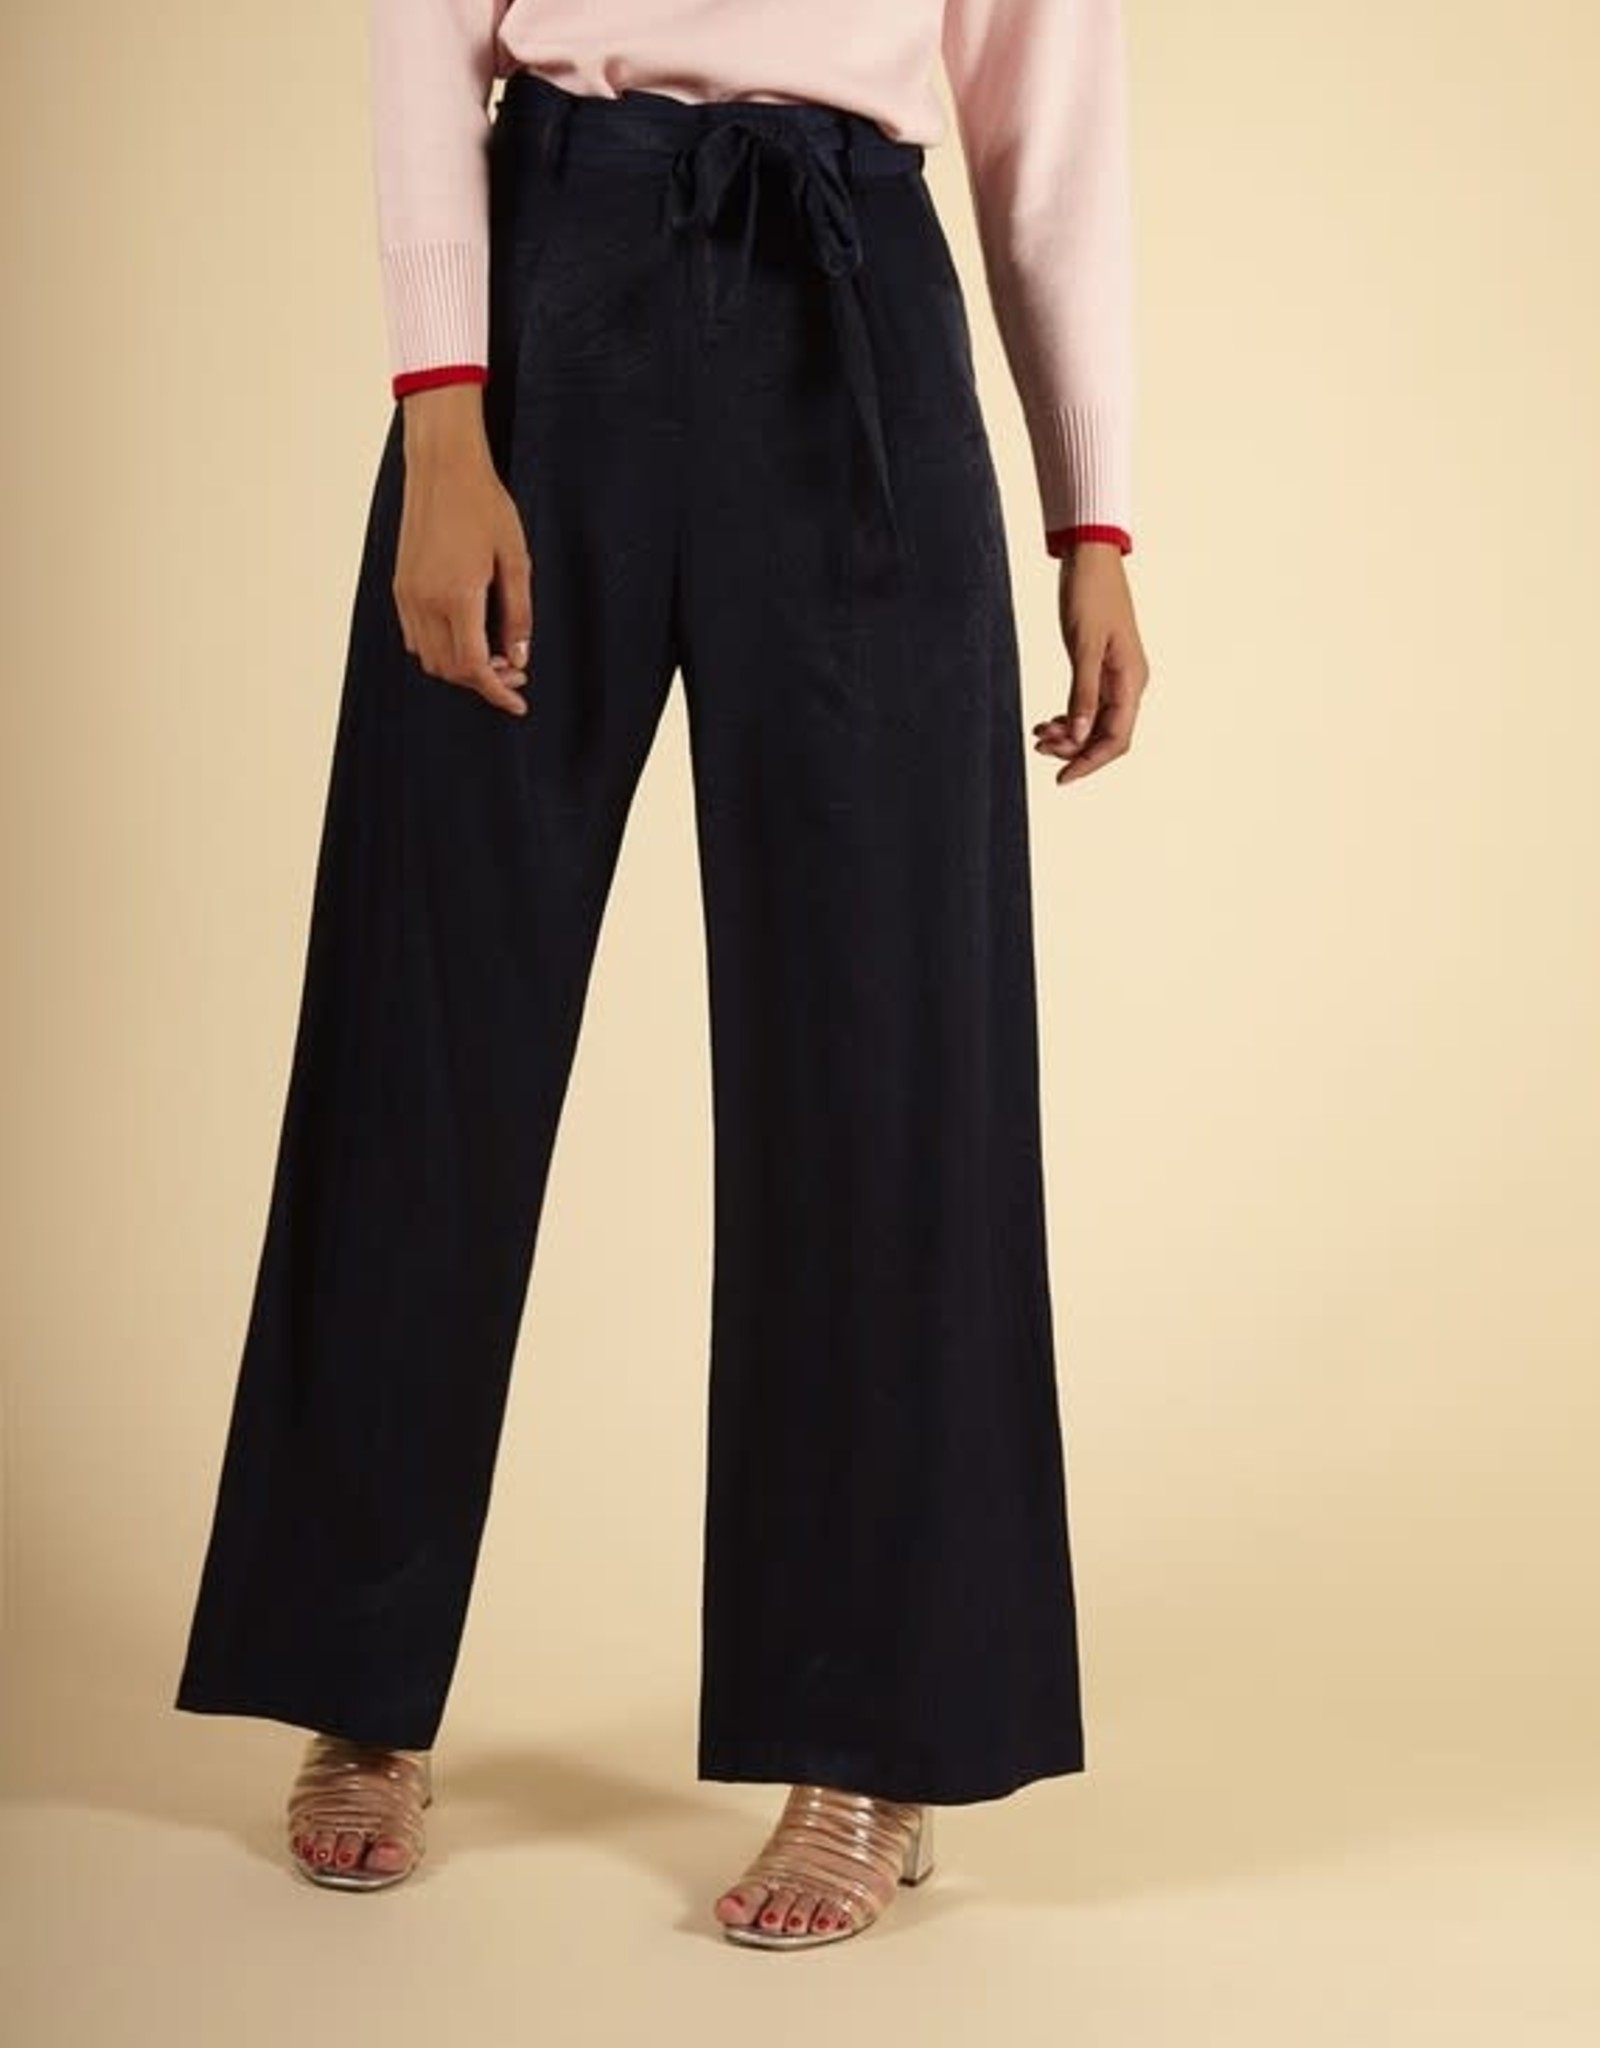 FRNCH Phedre Wide Leg Pants from FRNCH